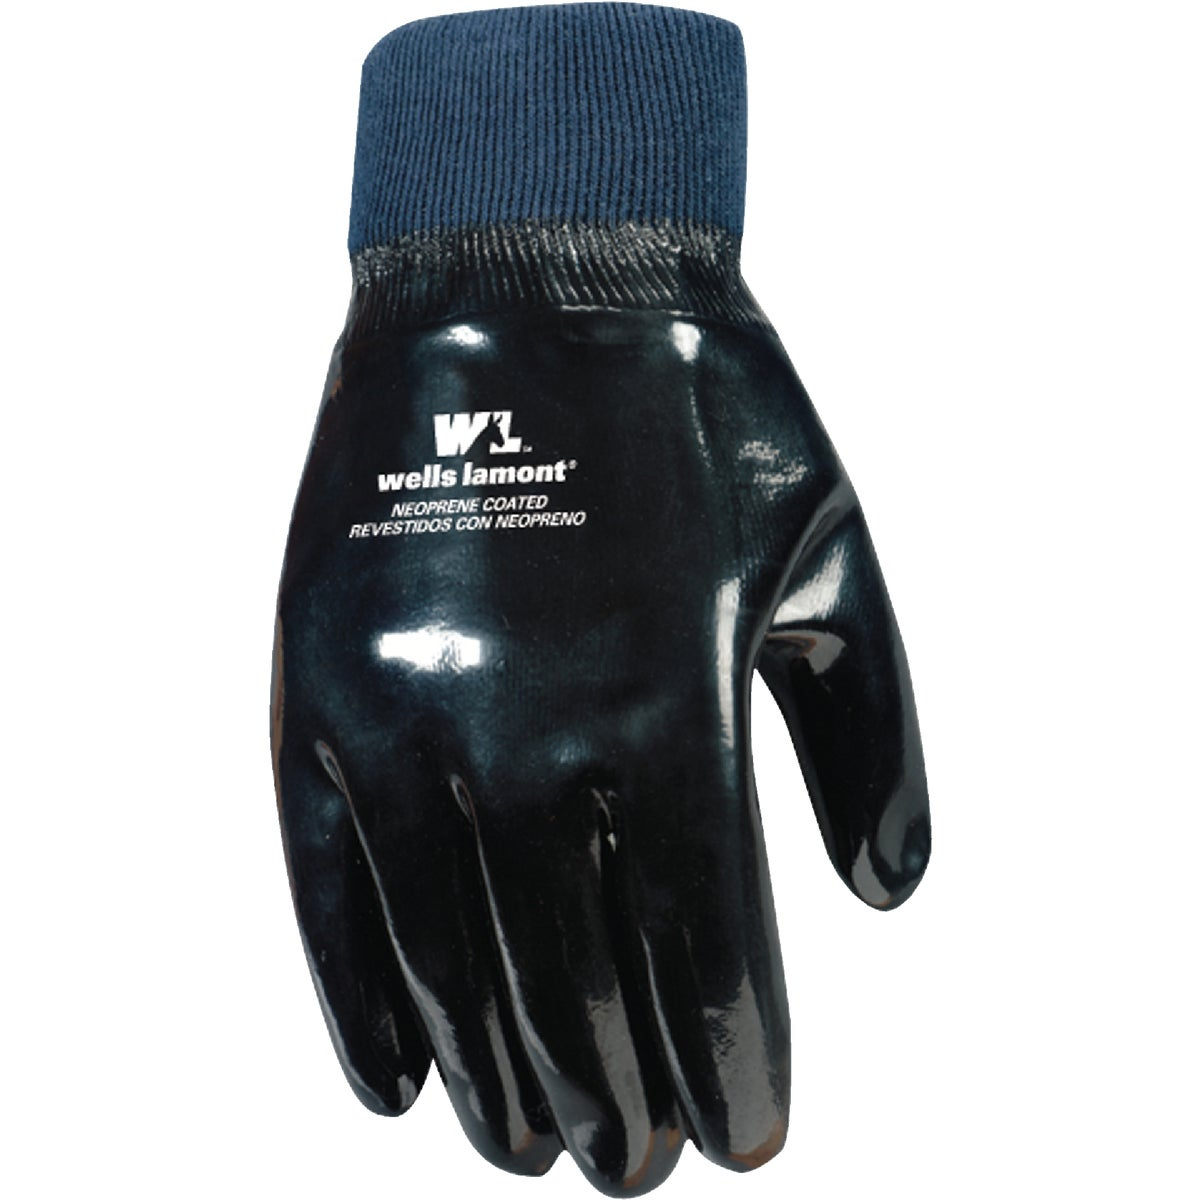 LRG NEOPRENE COATD GLOVE